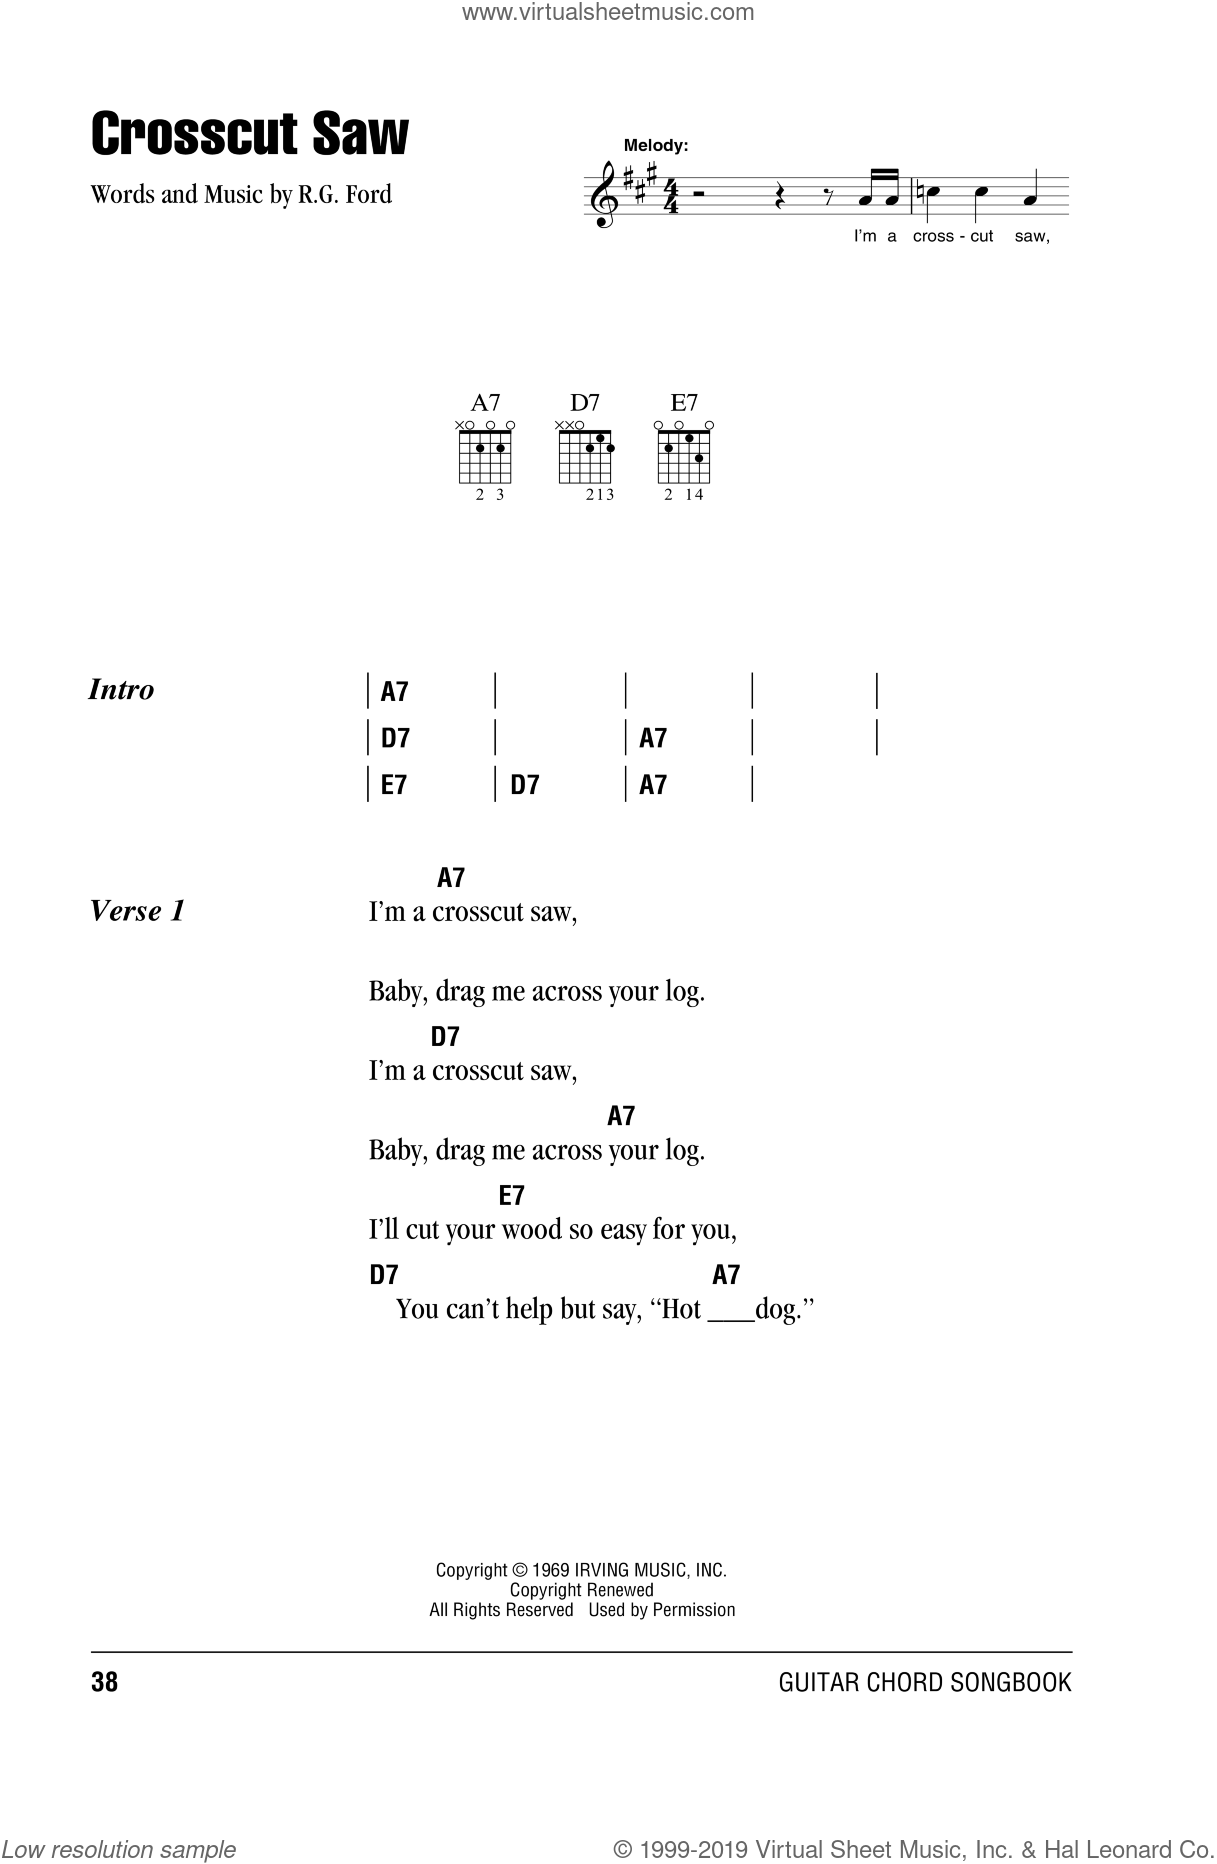 Crosscut Saw sheet music for guitar (chords) by Eric Clapton, Albert King and Robben Ford, intermediate guitar (chords). Score Image Preview.